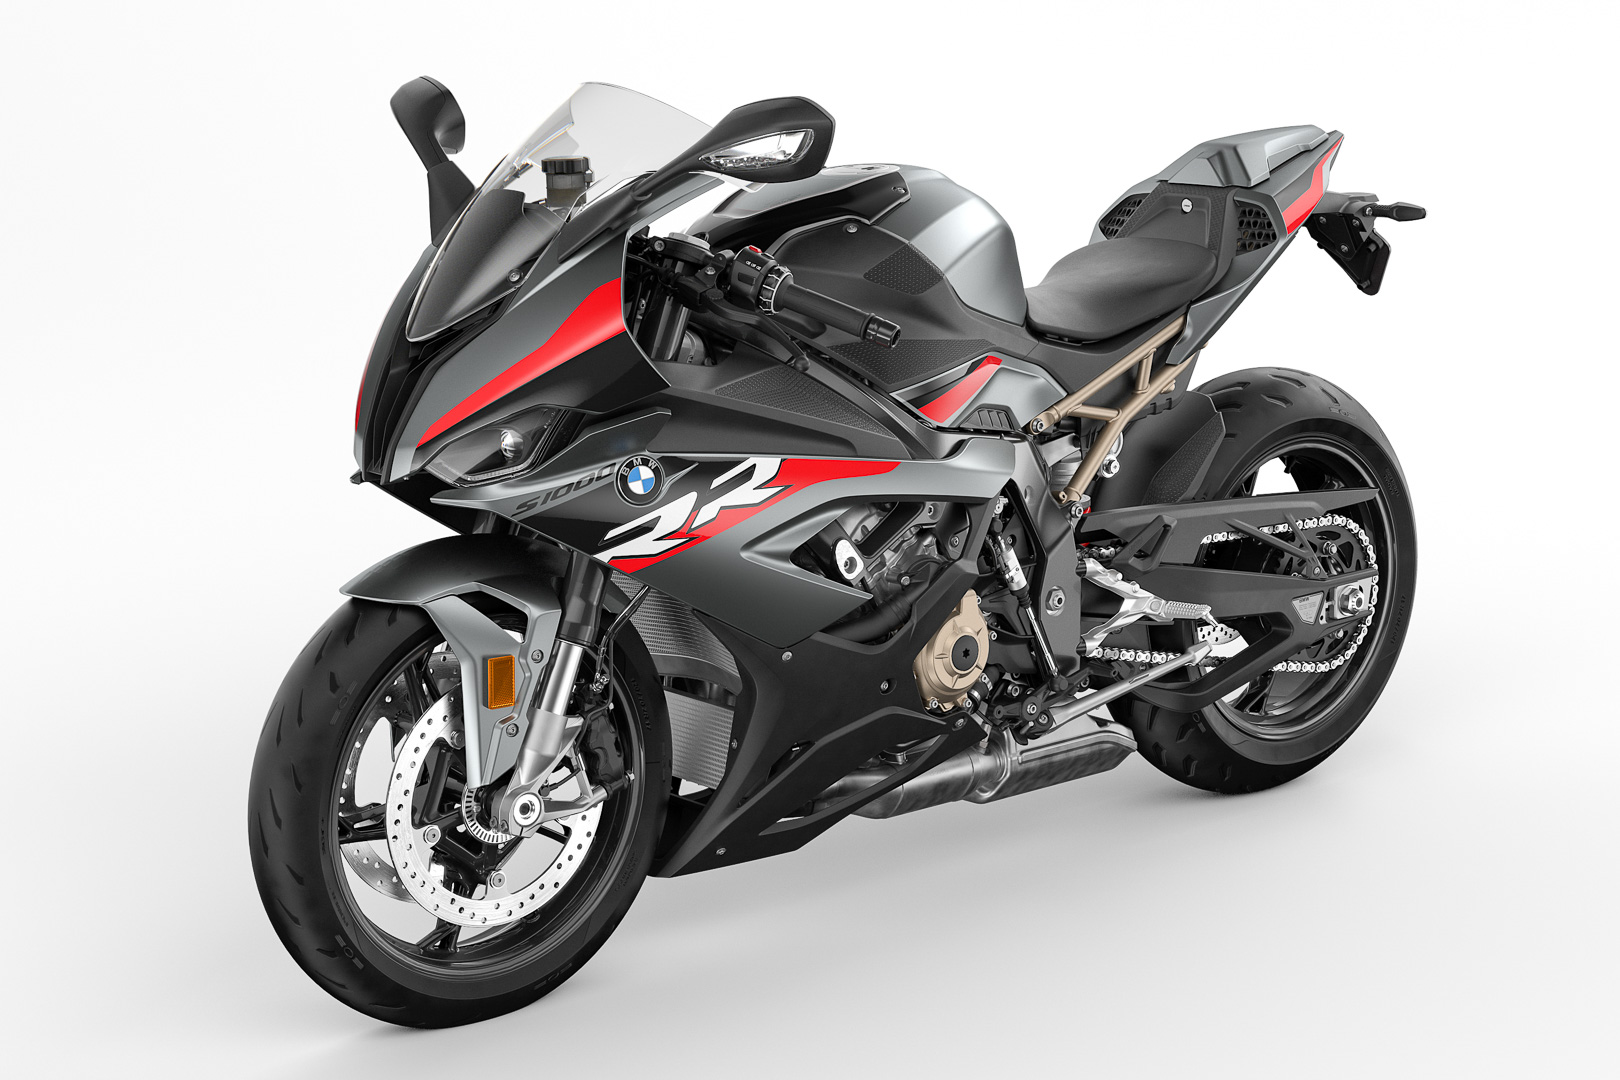 2022 BMW S 1000 RR: Price and MSRP